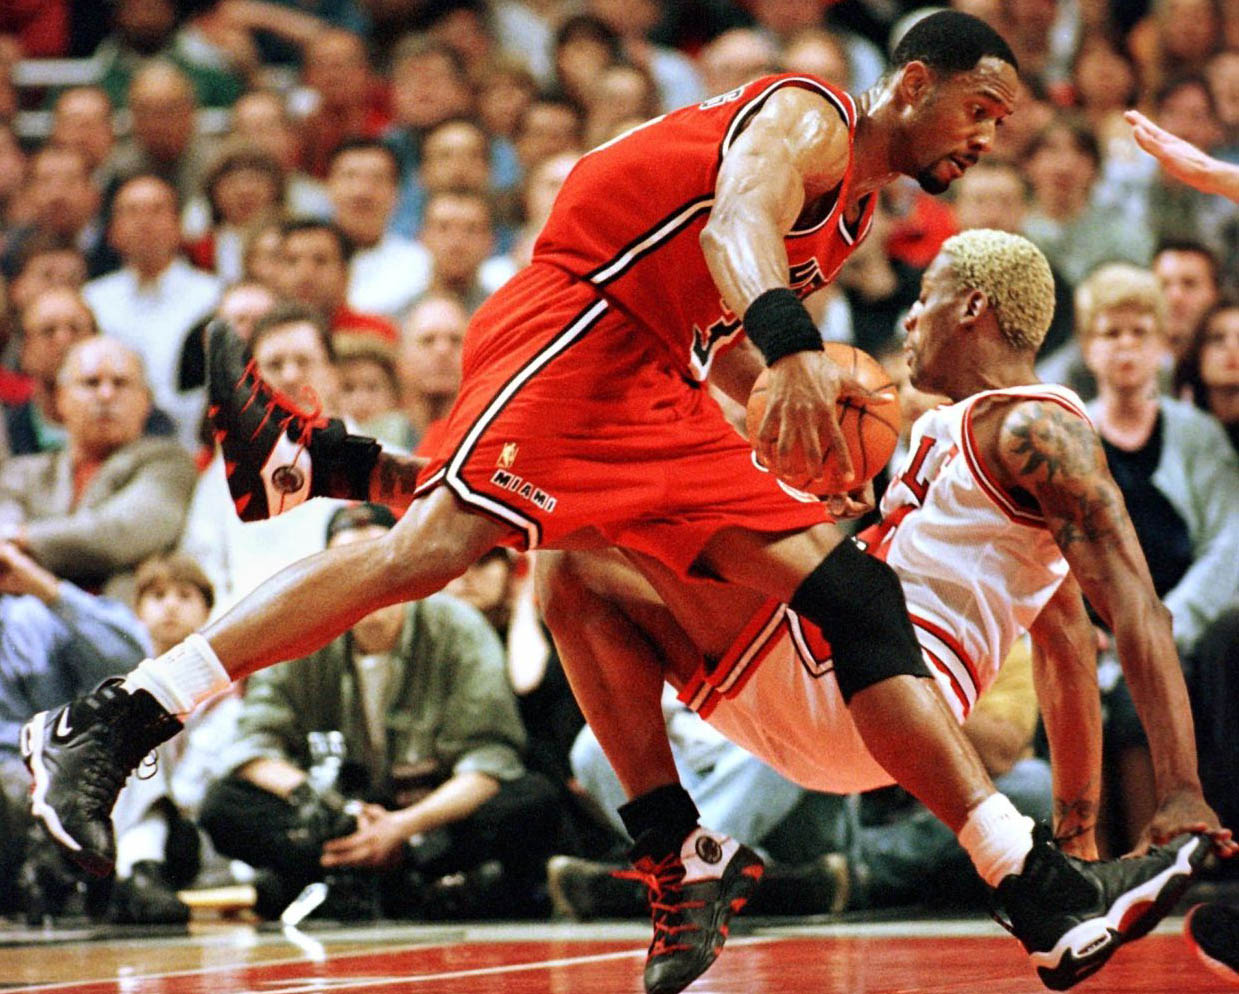 Flashback Best Shoes Worn With the Original Miami Heat Red Road